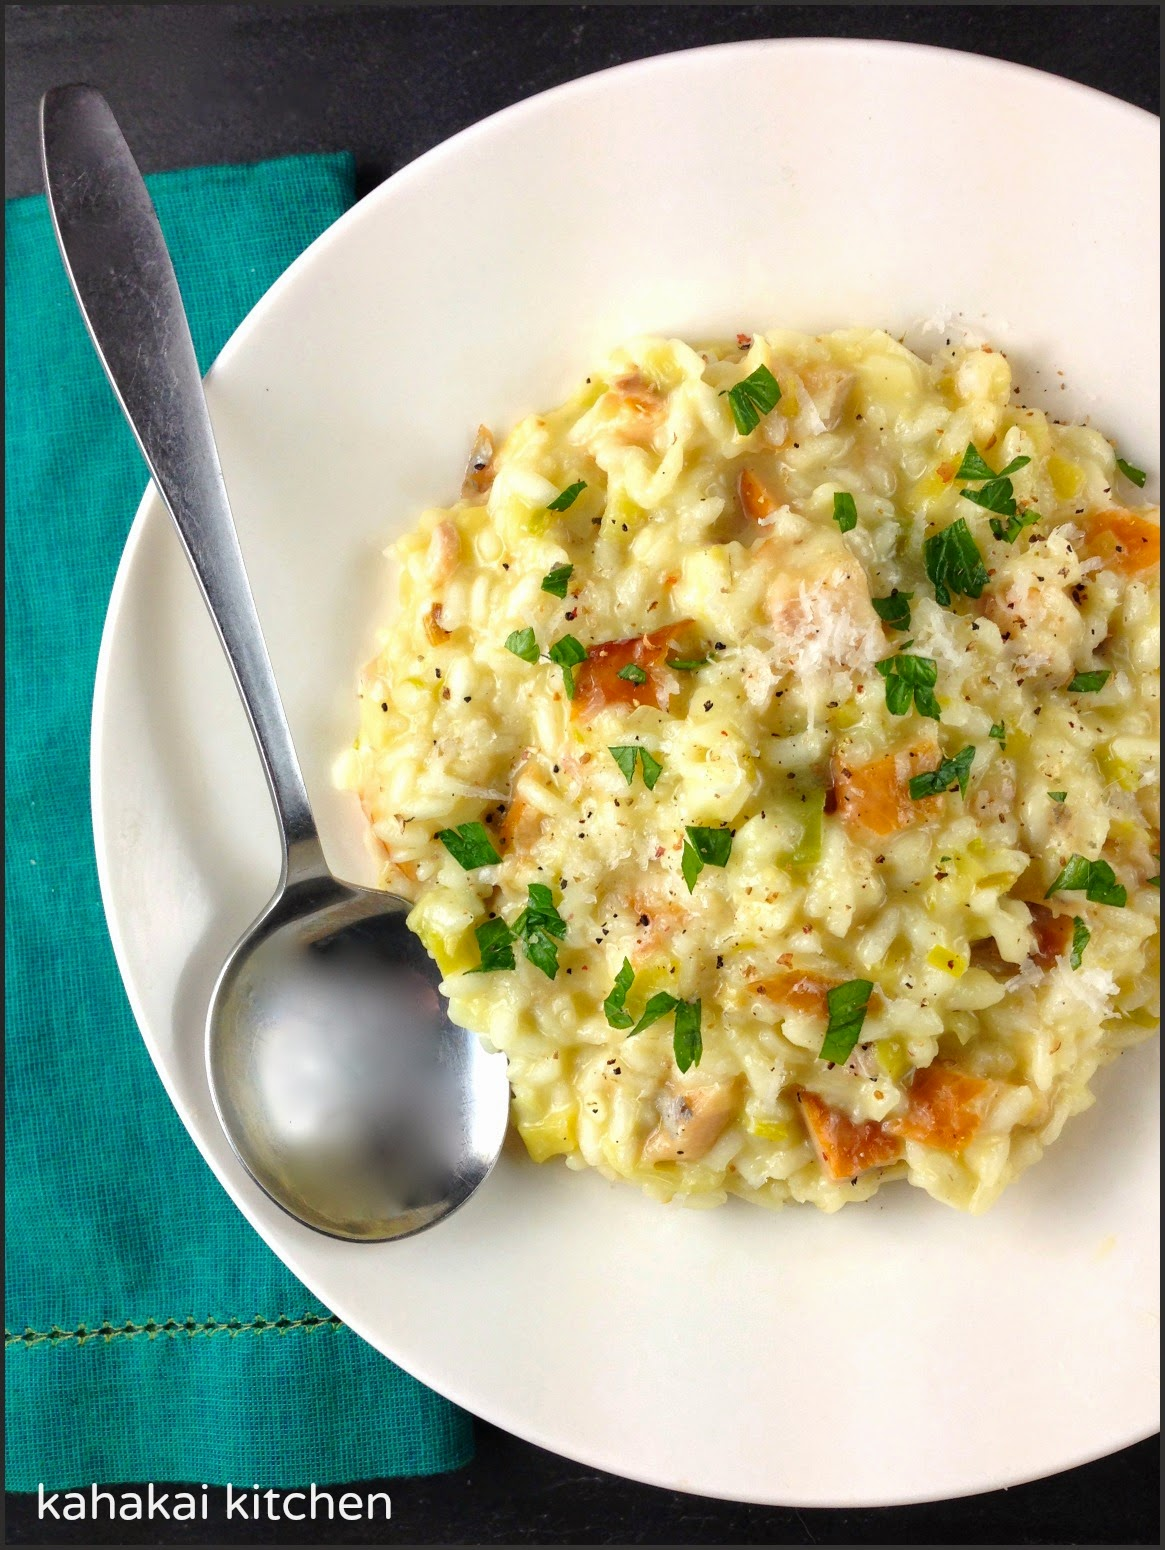 Kahakai Kitchen: Smoked Trout and Leek Risotto {One Photo ...